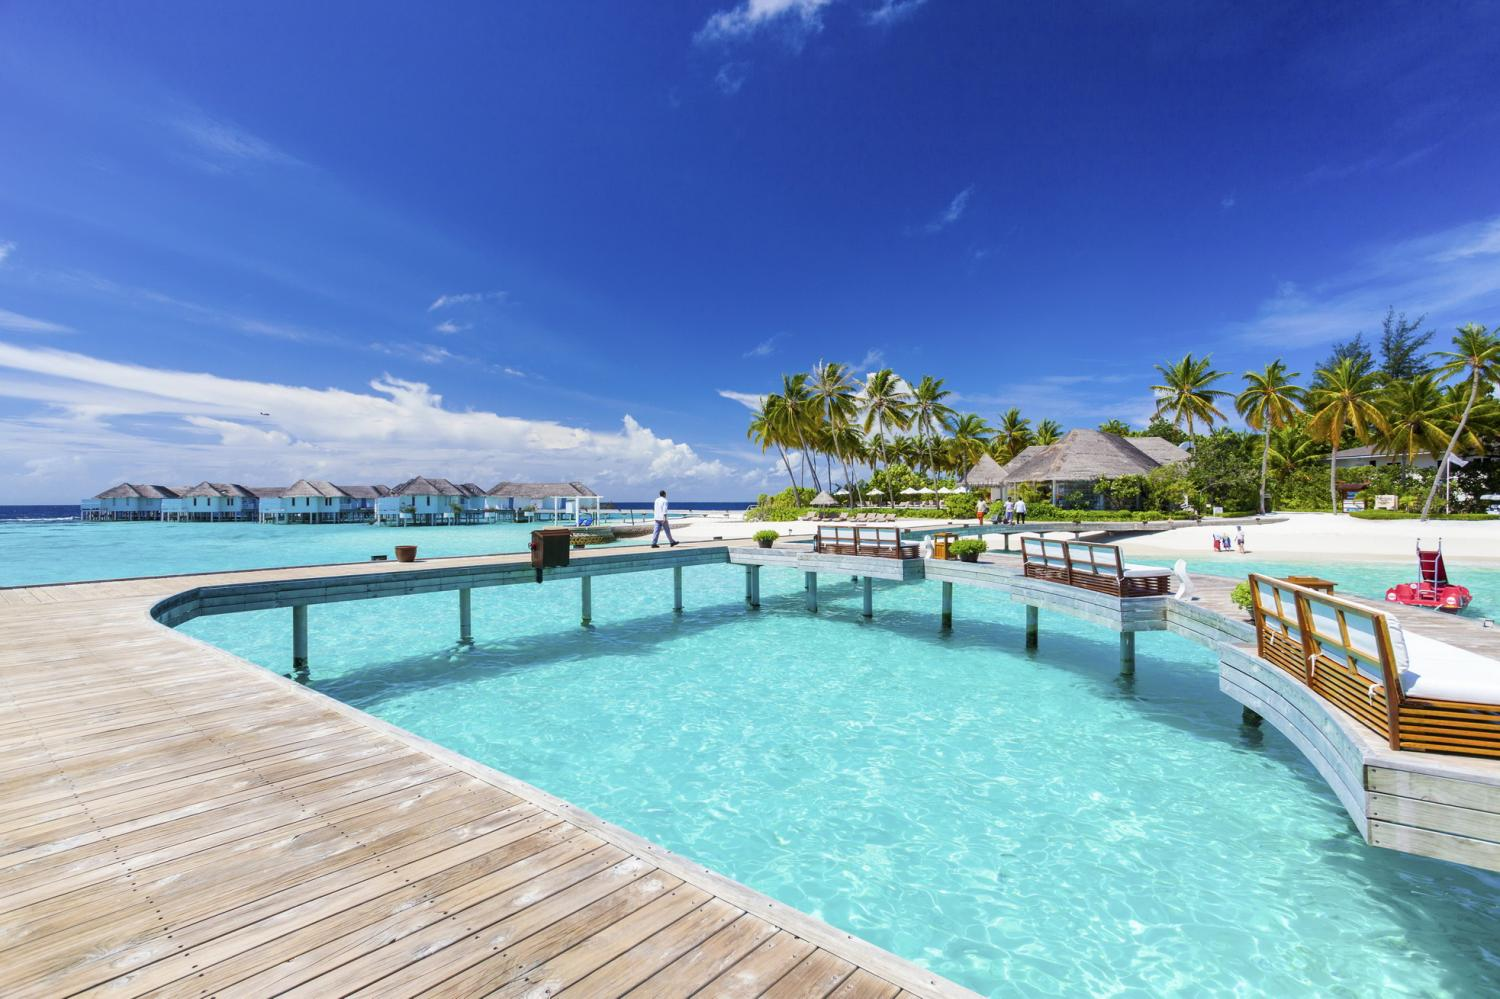 Centara Grand Island Resort & Spa Maldives. Hotels in the Maldives are located on atolls and generally separated from one another.